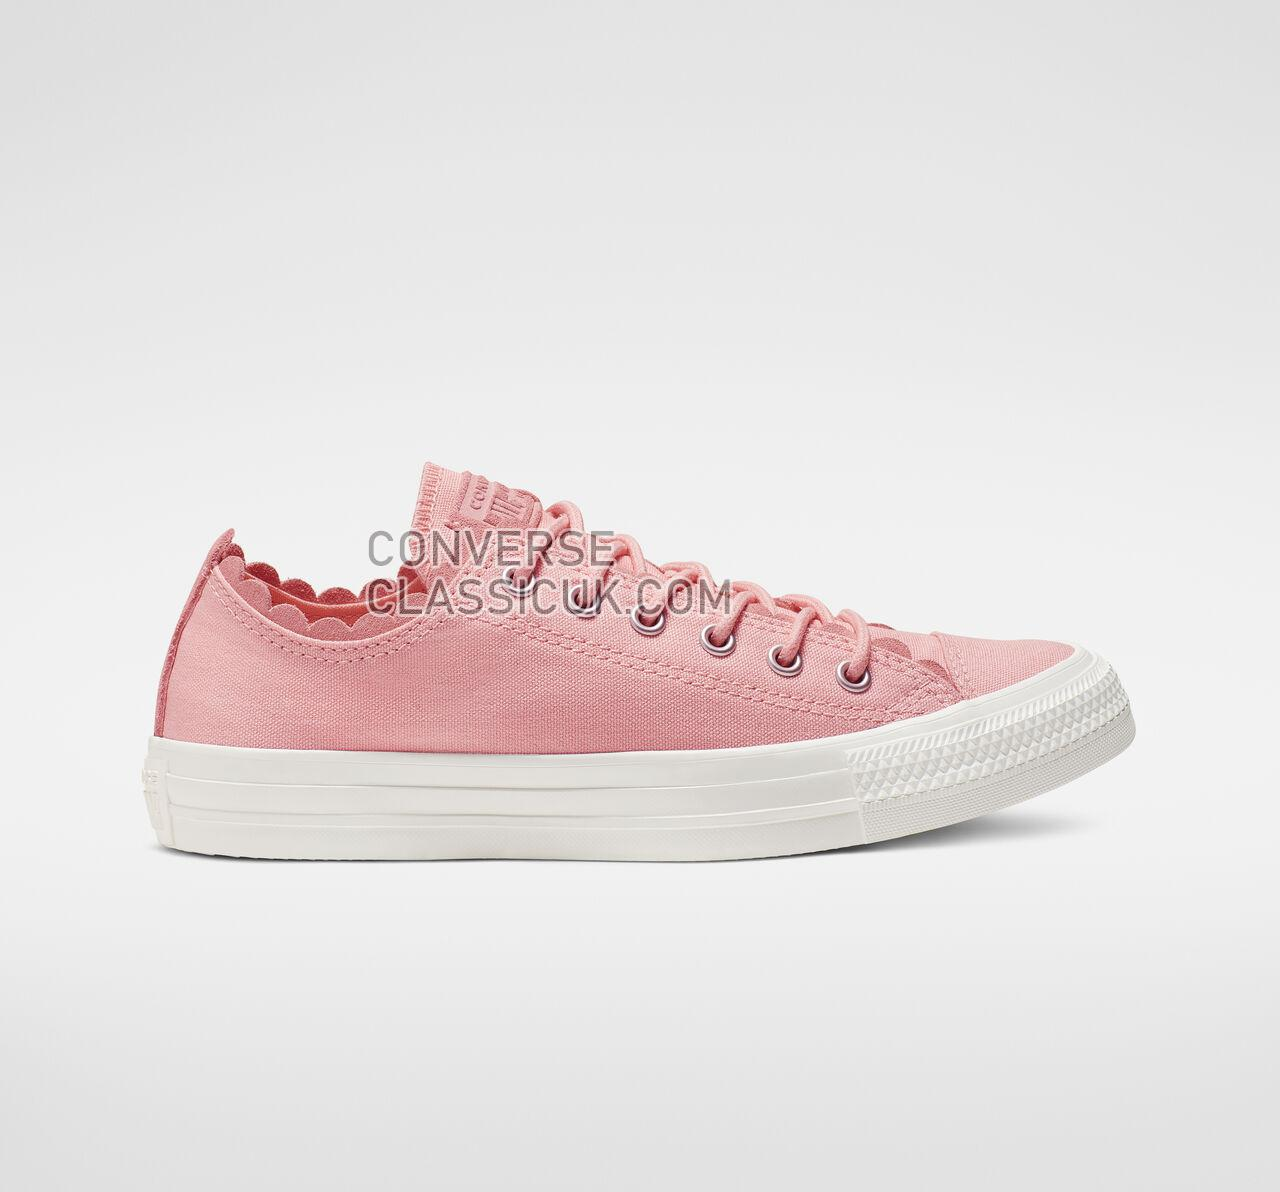 Converse Chuck Taylor All Star Frilly Thrills Low Top Womens 564110C Bleached Coral/Bleached Coral Shoes